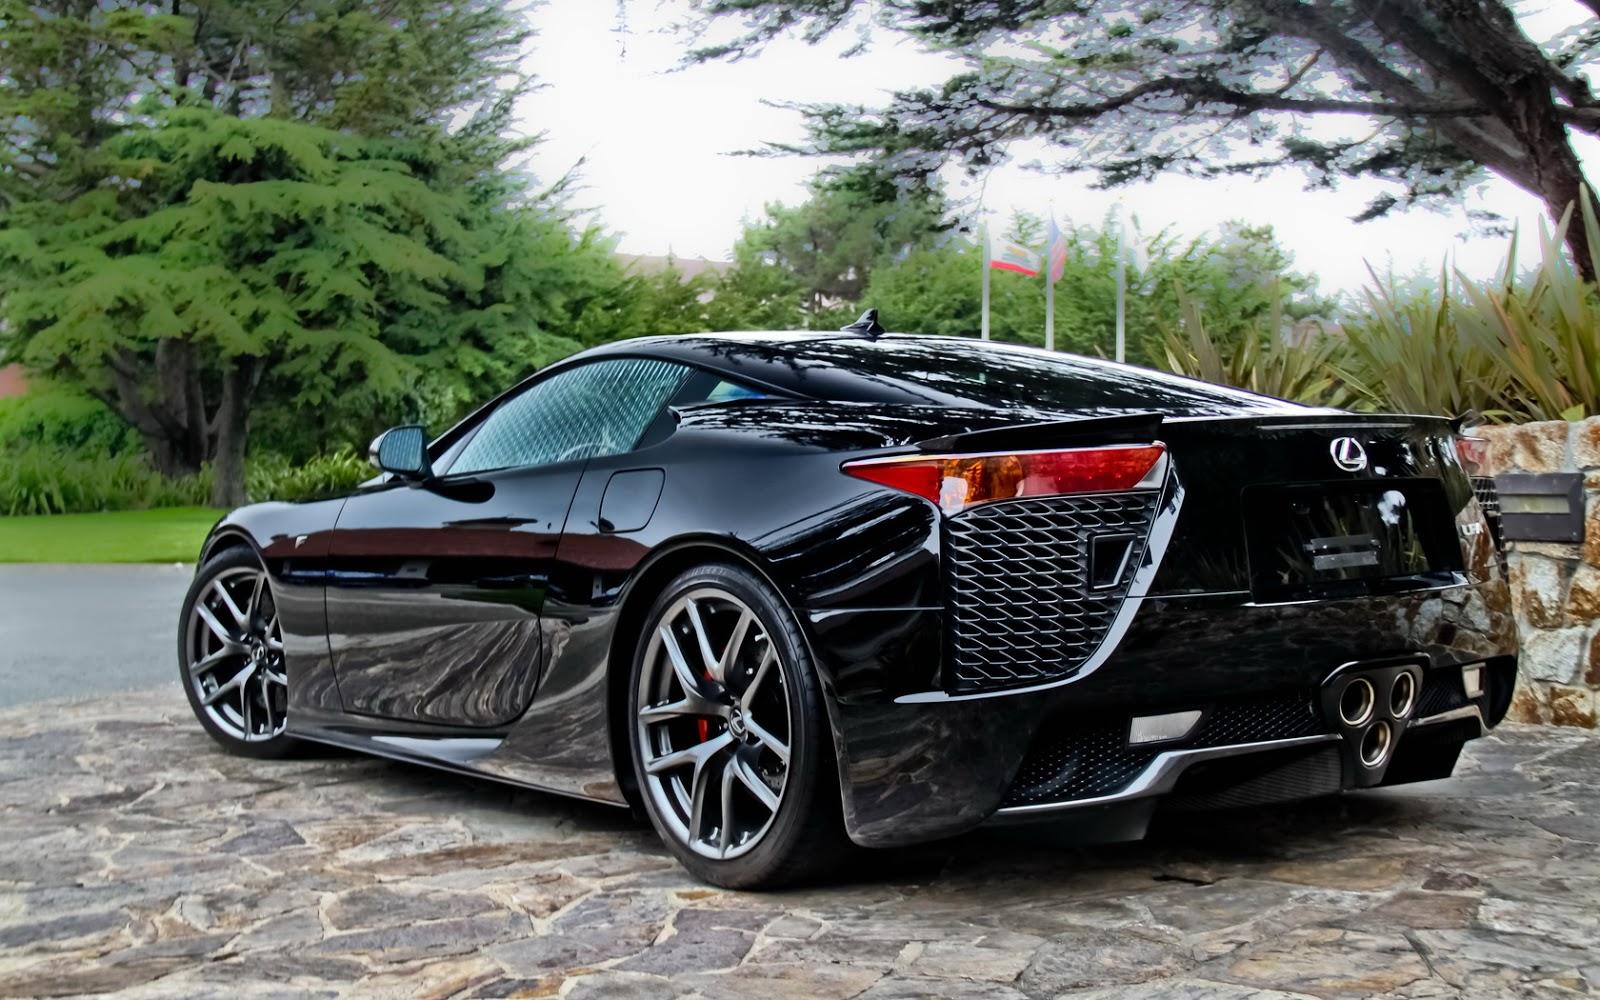 Black Lexus LFA Supercar Wallpaper - HD